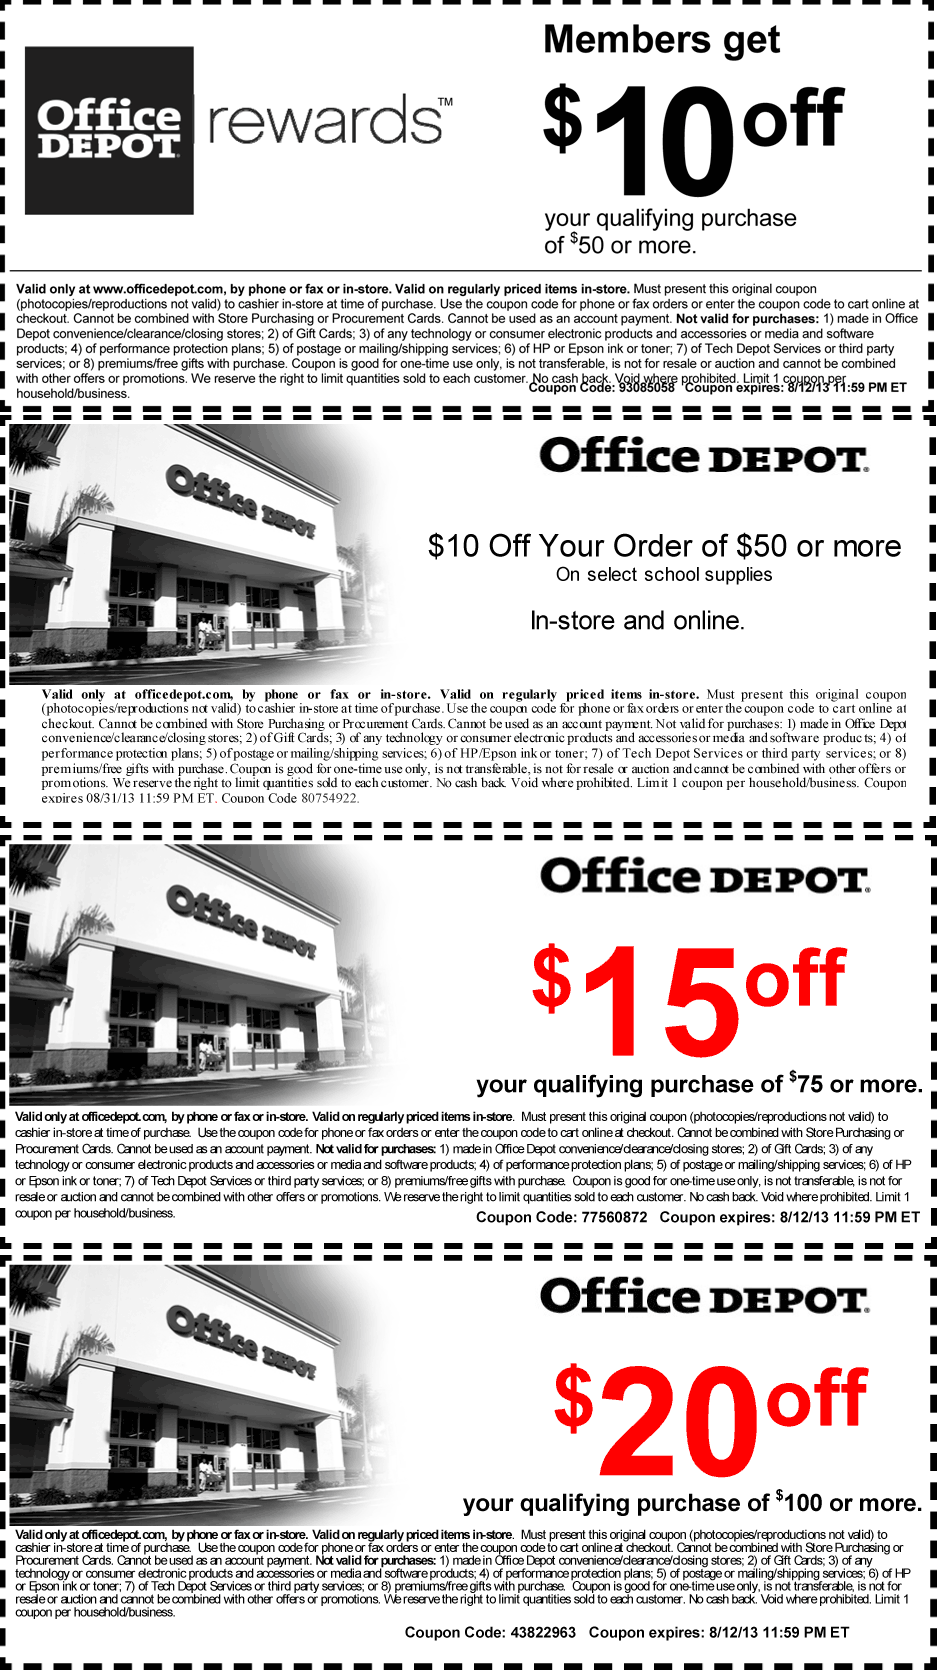 Office Depot Deal! | Coupon apps, Coupons, School supplies